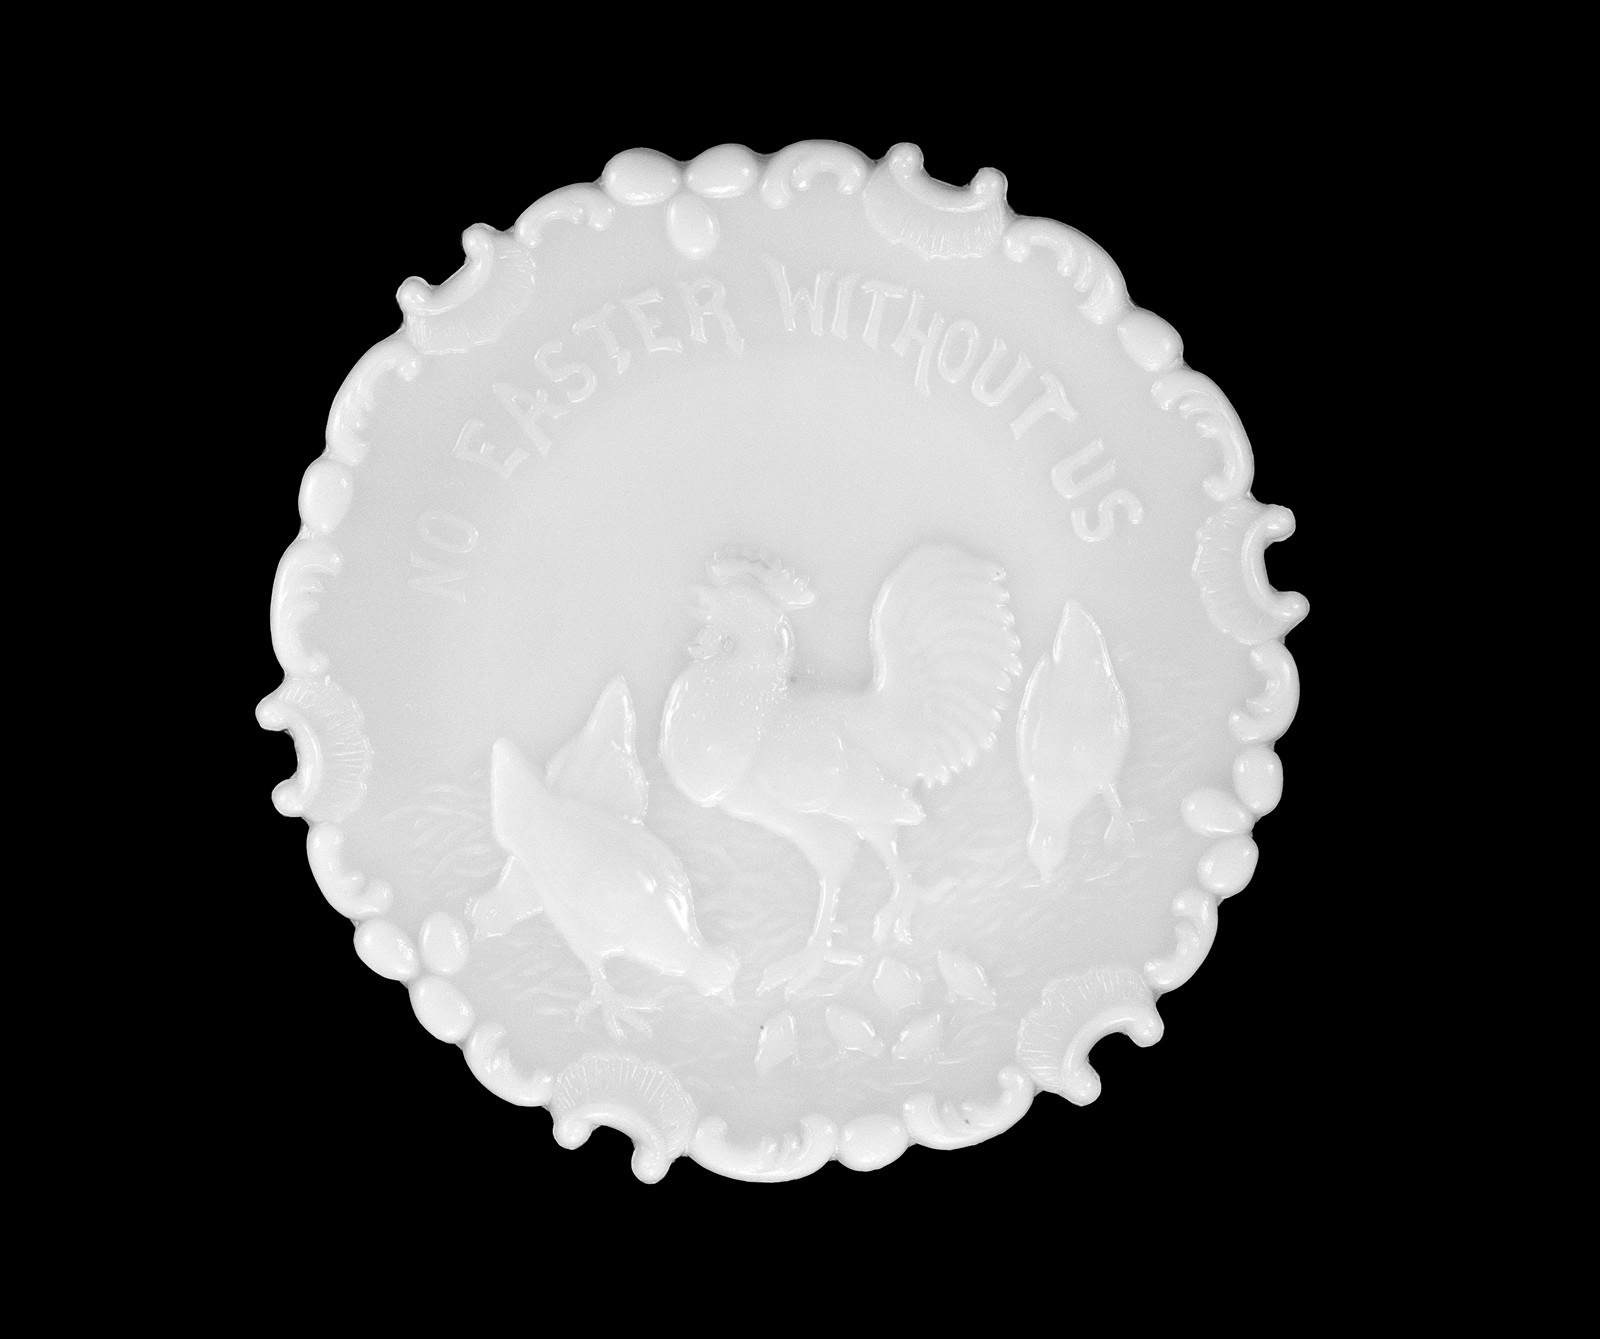 Plate, Dithridge Flint Glass Company, New Brighton, Pa., 1900. Gift of Mr. and Mrs. William F. Gelabert. 79.4.159.